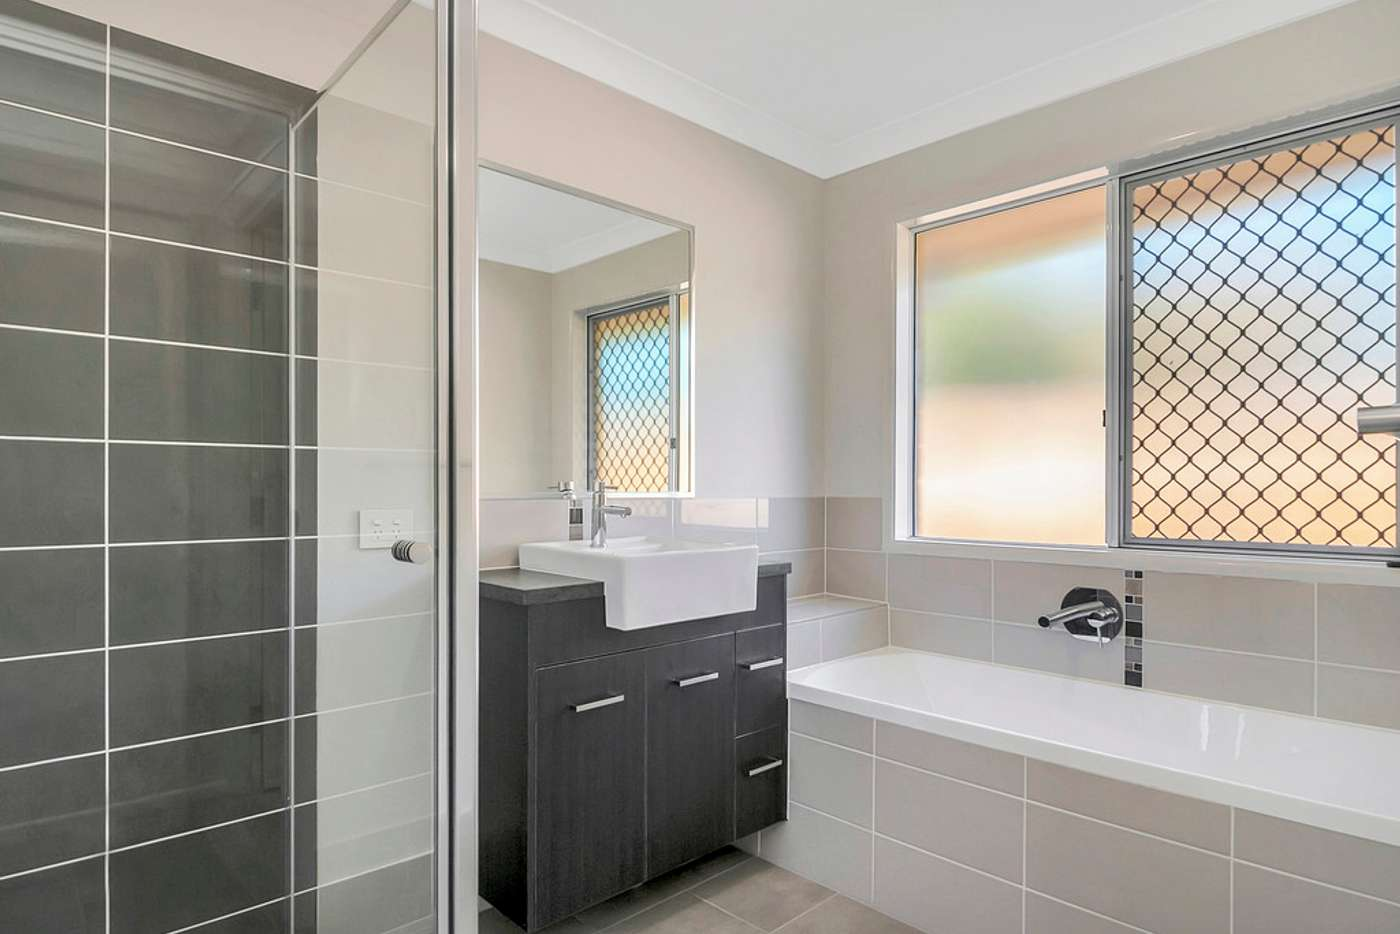 Fifth view of Homely house listing, 19 Macaranga Street, Marsden QLD 4132